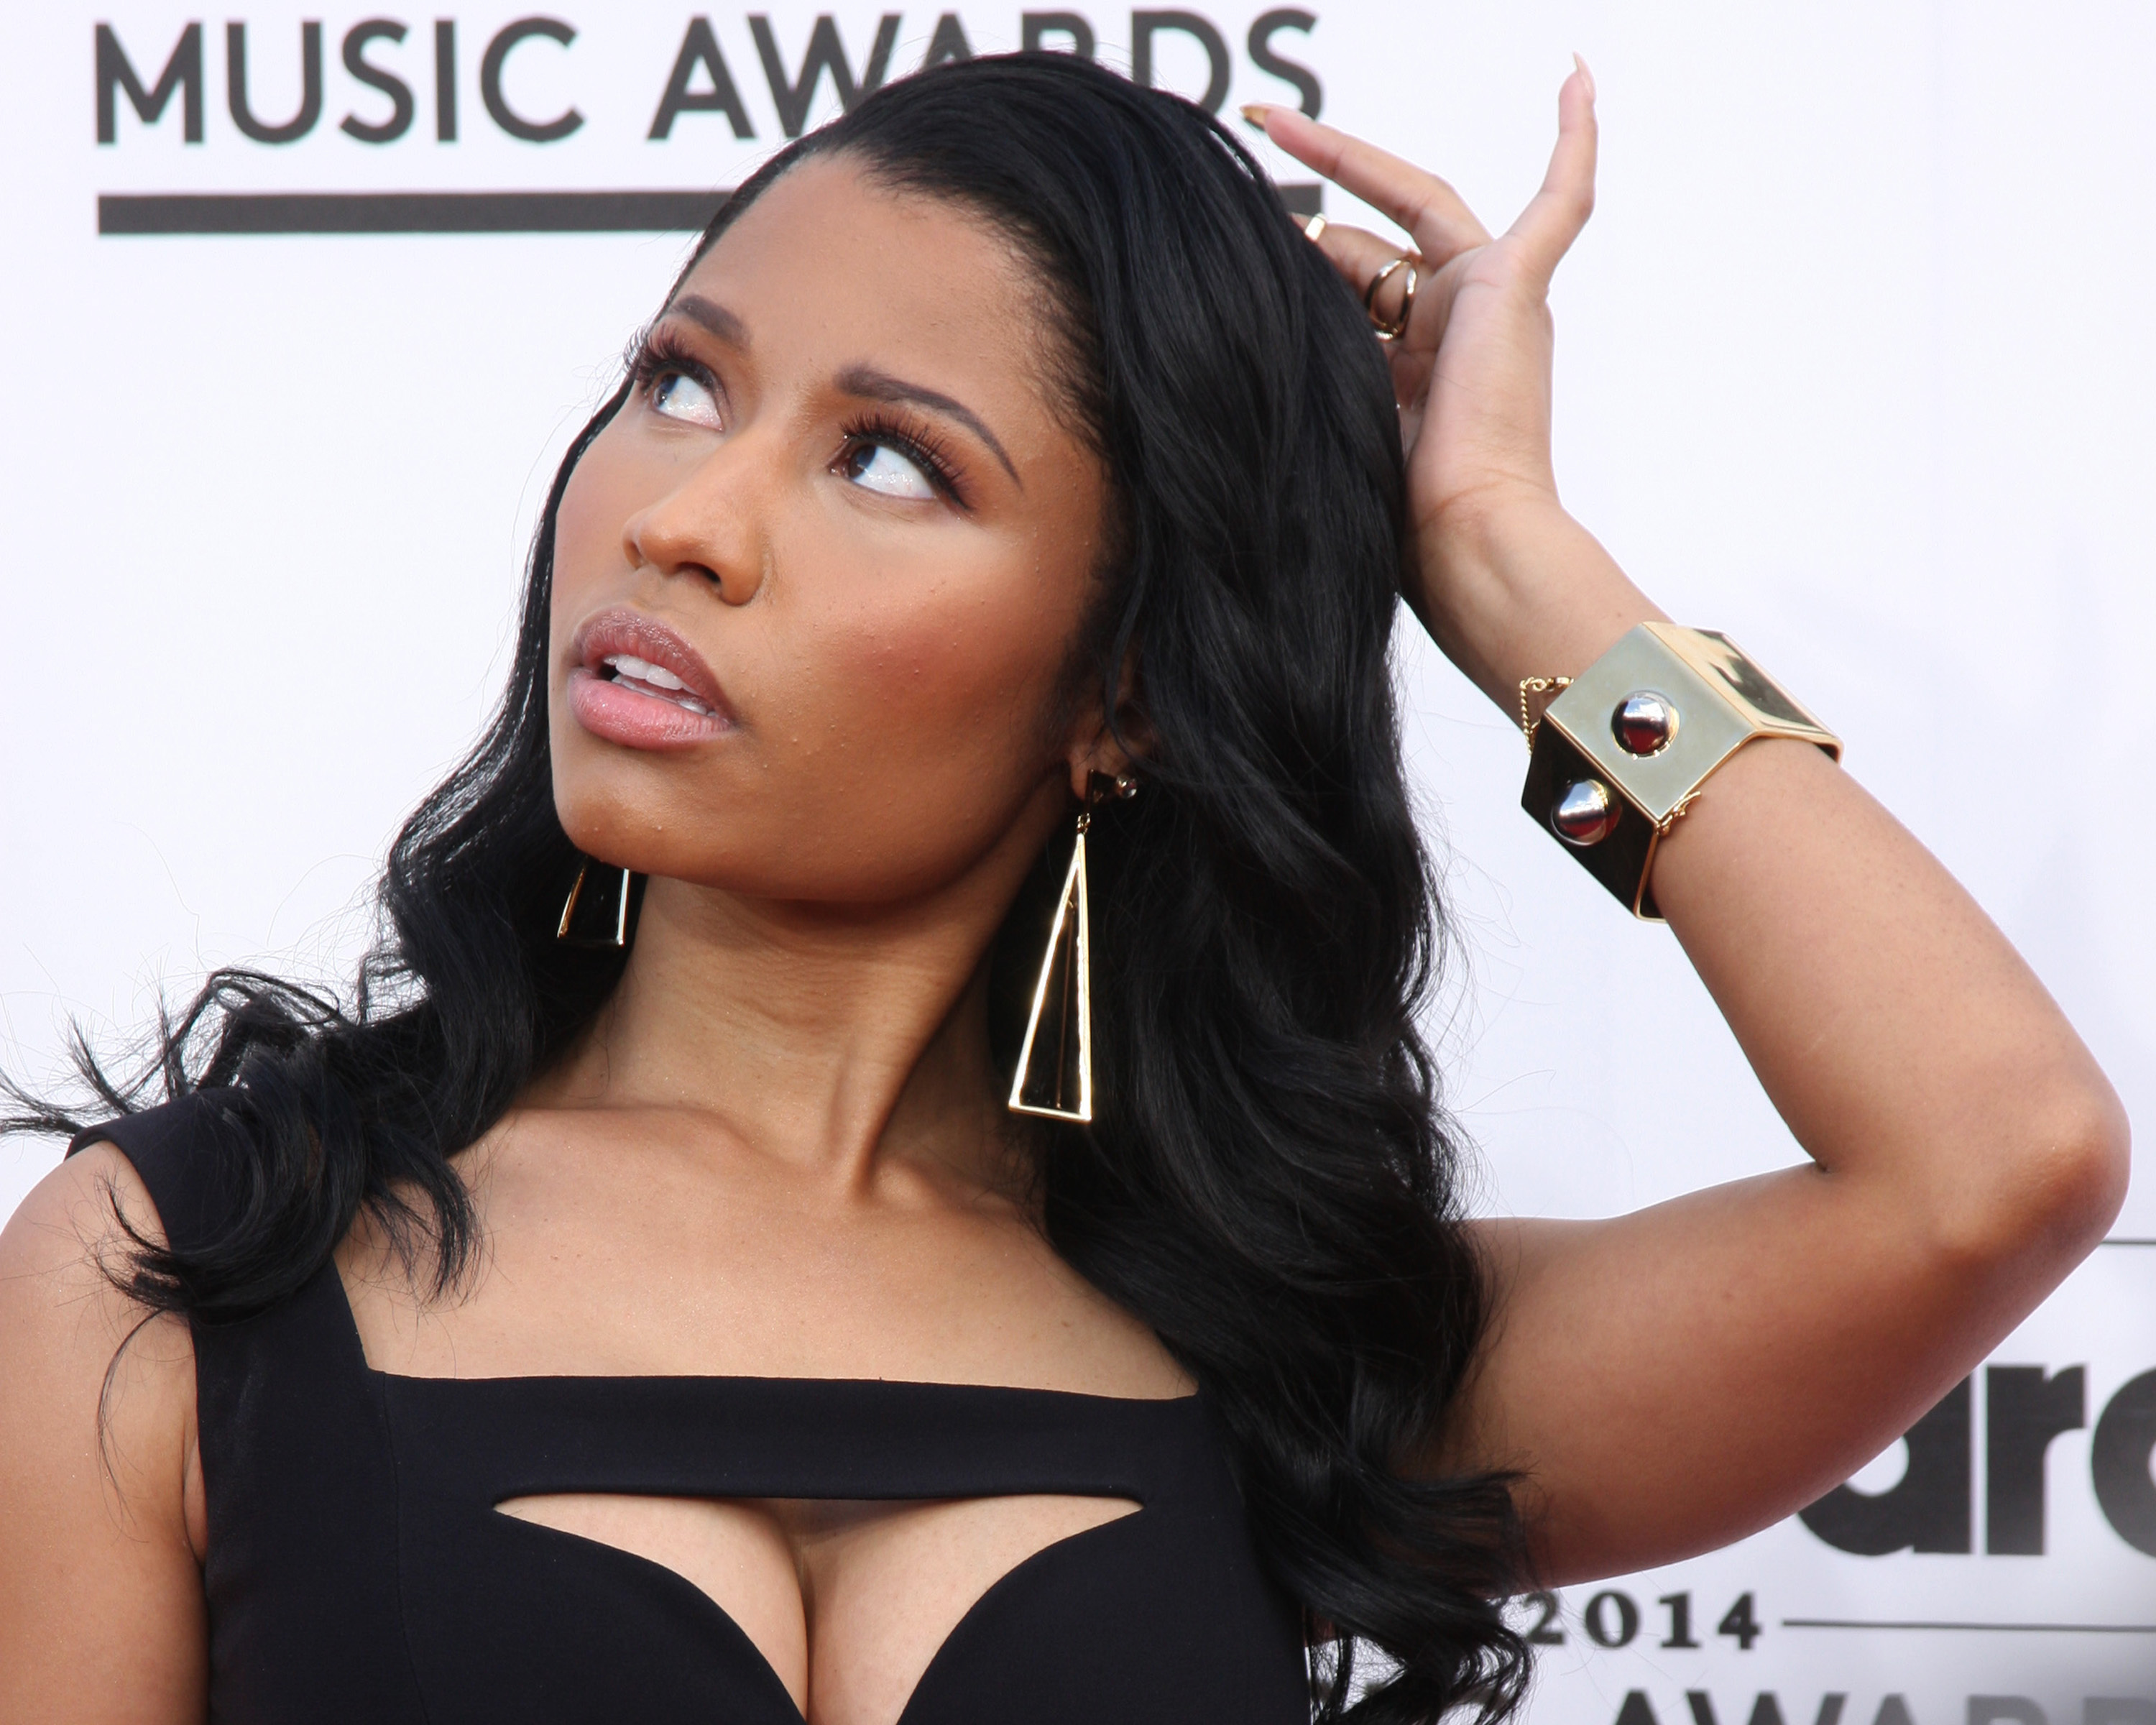 Nicki Minaj Drags President Elect Trump In New Song